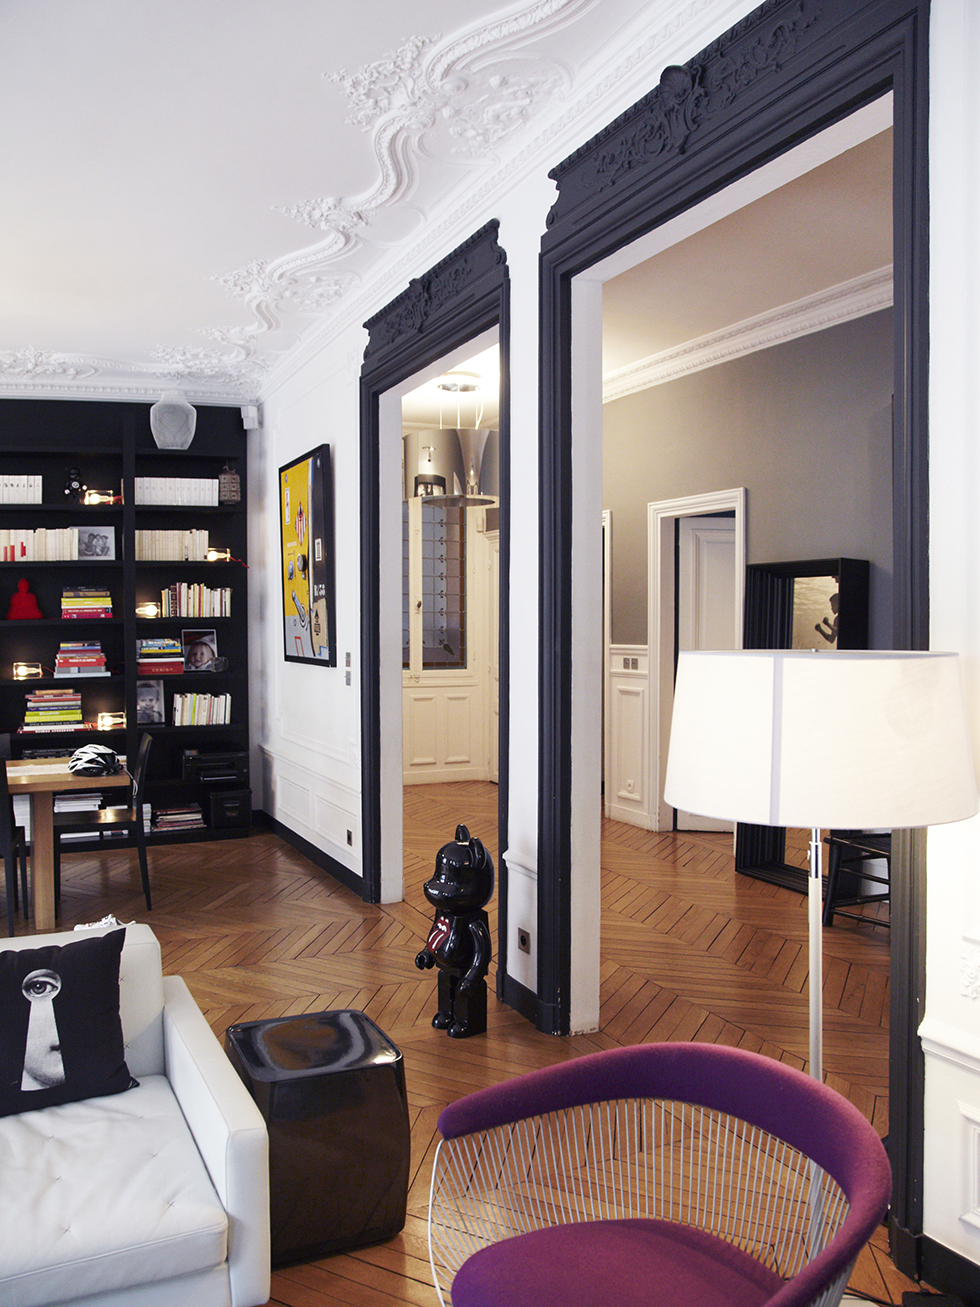 un int rieur parisien so chic frenchy fancy. Black Bedroom Furniture Sets. Home Design Ideas